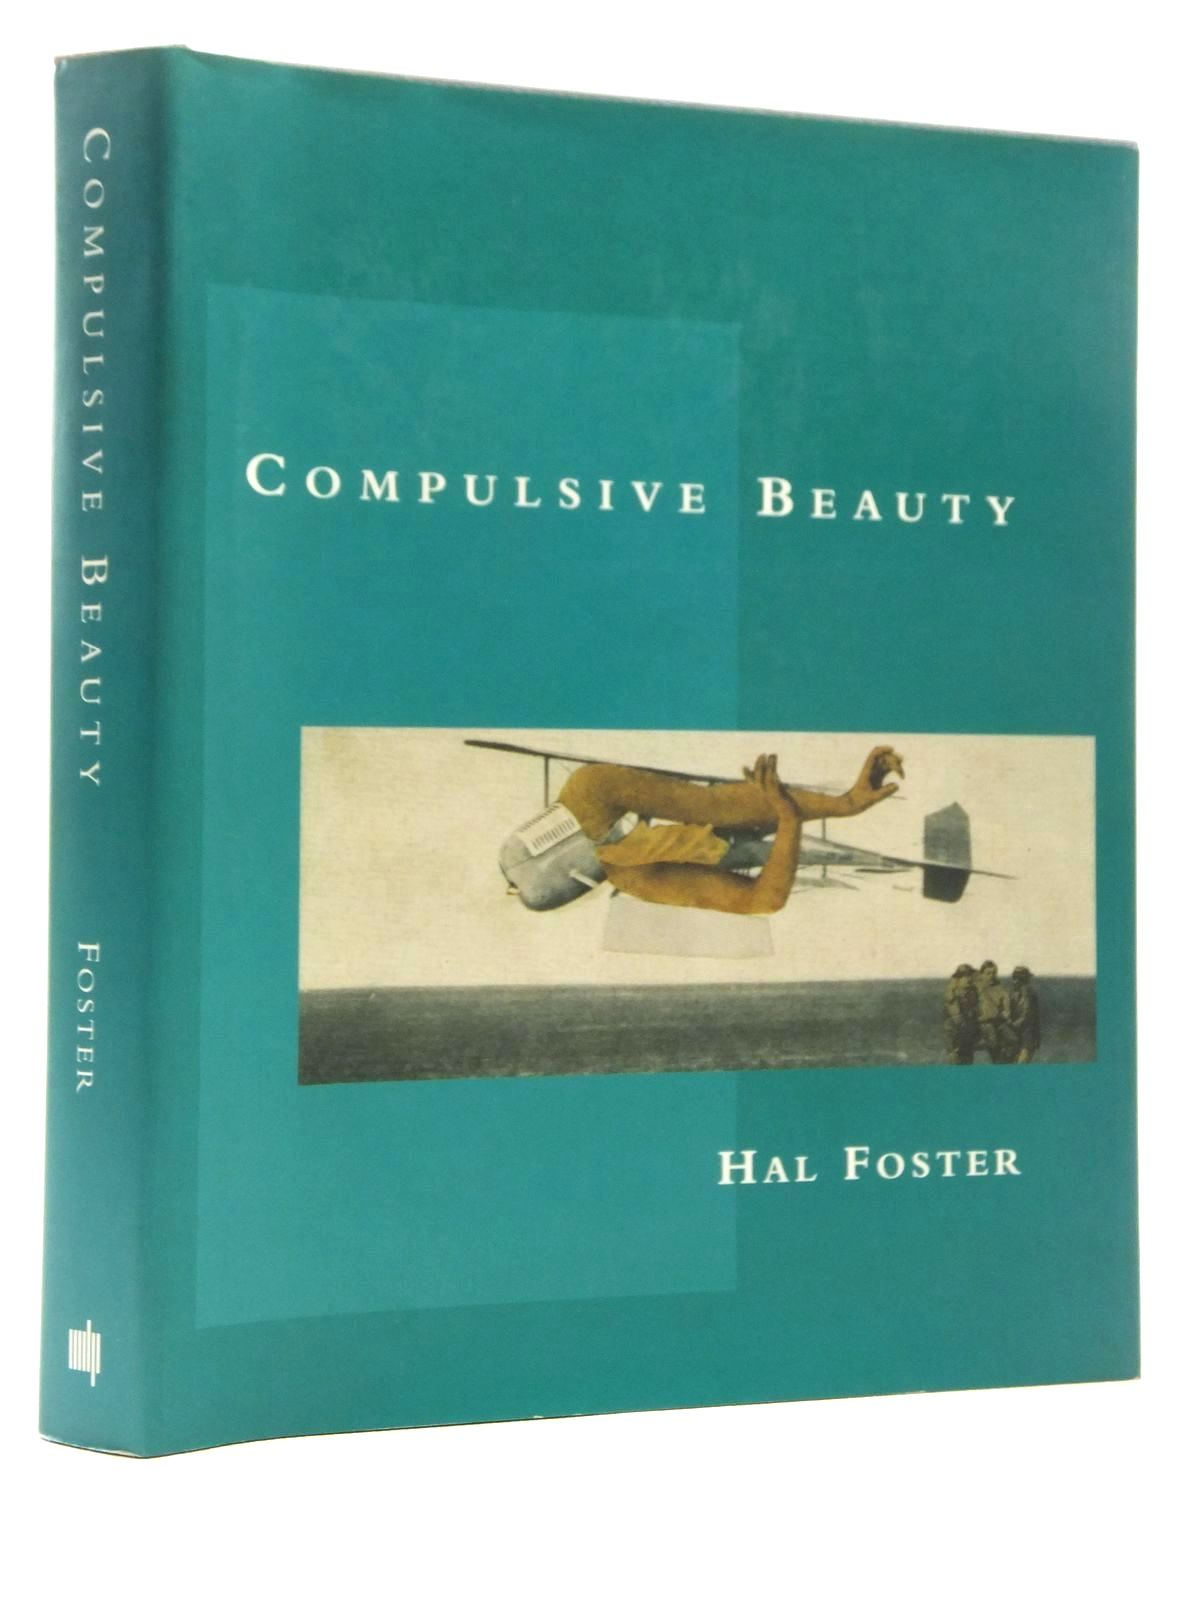 Photo of COMPULSIVE BEAUTY written by Foster, Hal published by The MIT Press (STOCK CODE: 1815042)  for sale by Stella & Rose's Books